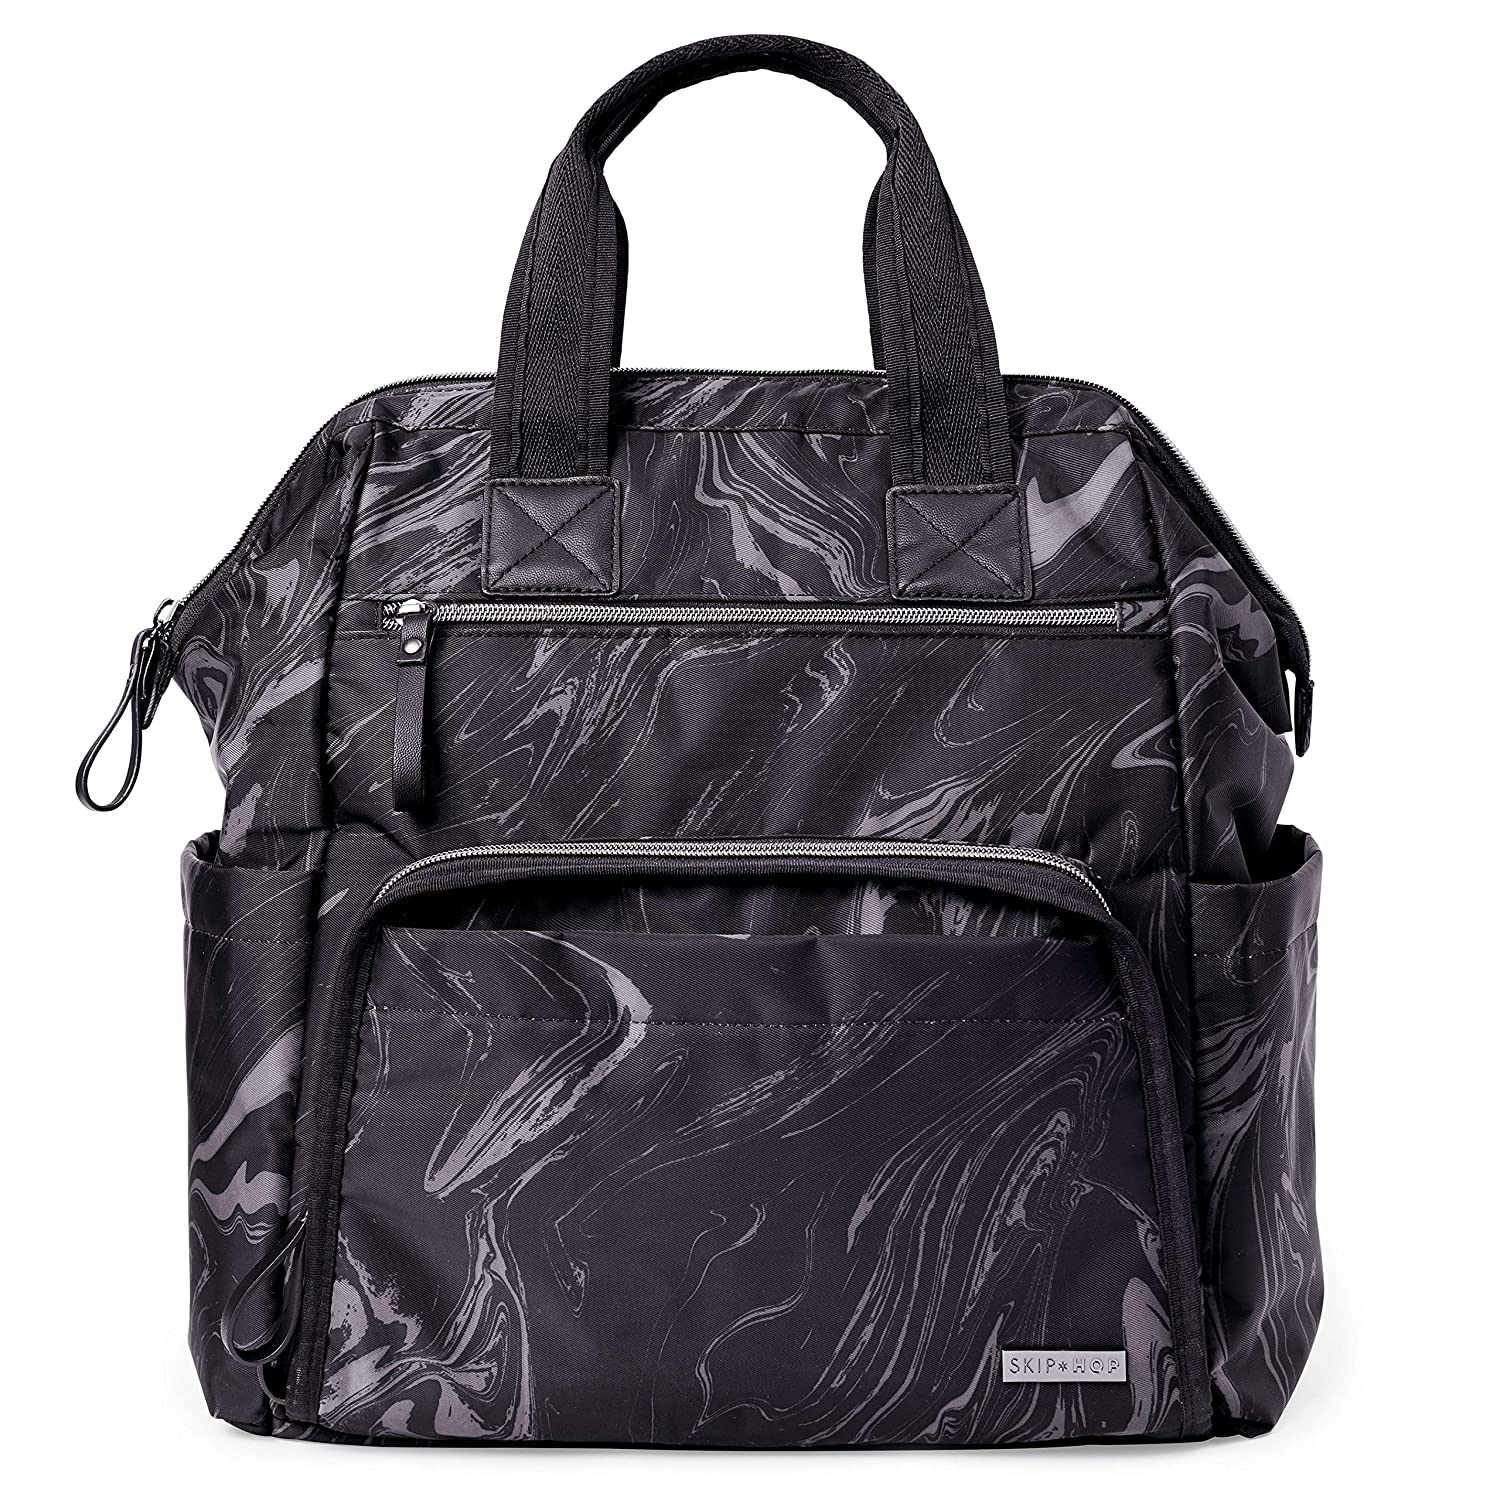 Skip Hop Diaper Bag Backpack: Mainframe Large Capacity Wide Open Structure with Changing Pad & Stroller Attachement, Black Marble